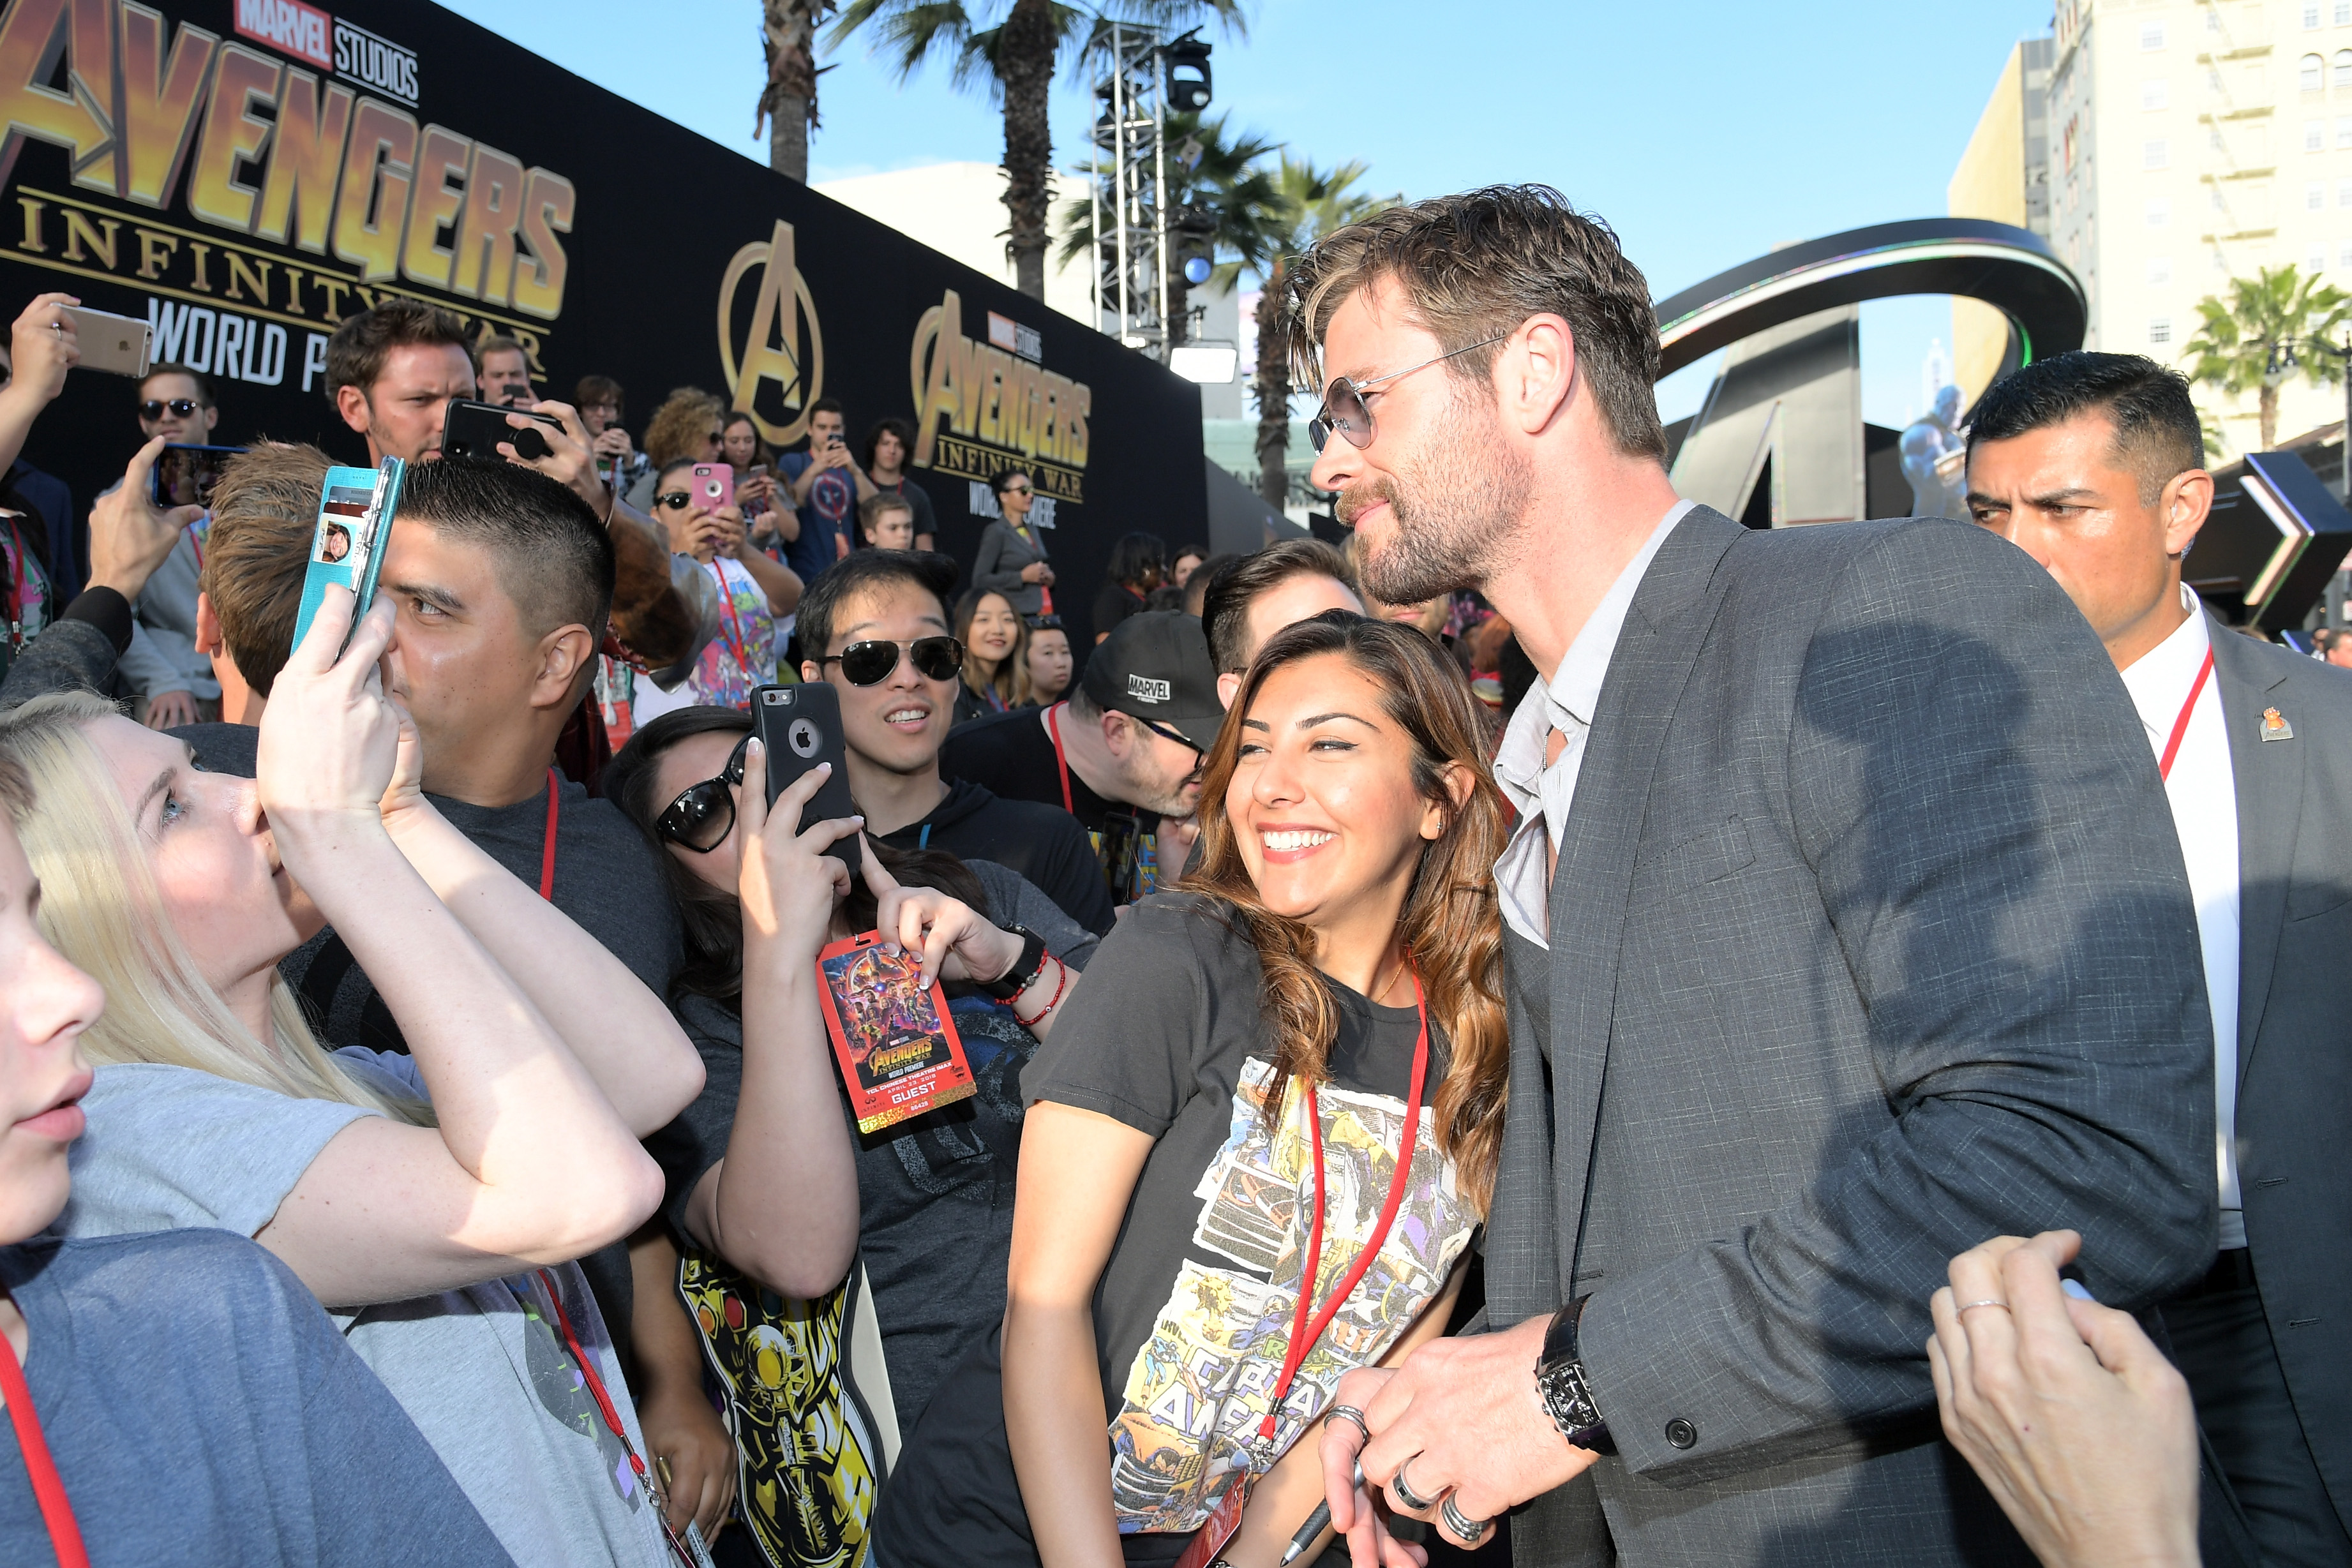 HOLLYWOOD, CA - APRIL 23:  Actor Chris Hemsworth (R) attends the Los Angeles Global Premiere for Marvel Studios' Avengers: Infinity War on April 23, 2018 in Hollywood, California.  (Photo by Charley Gallay/Getty Images for Disney) *** Local Caption *** Chris Hemsworth